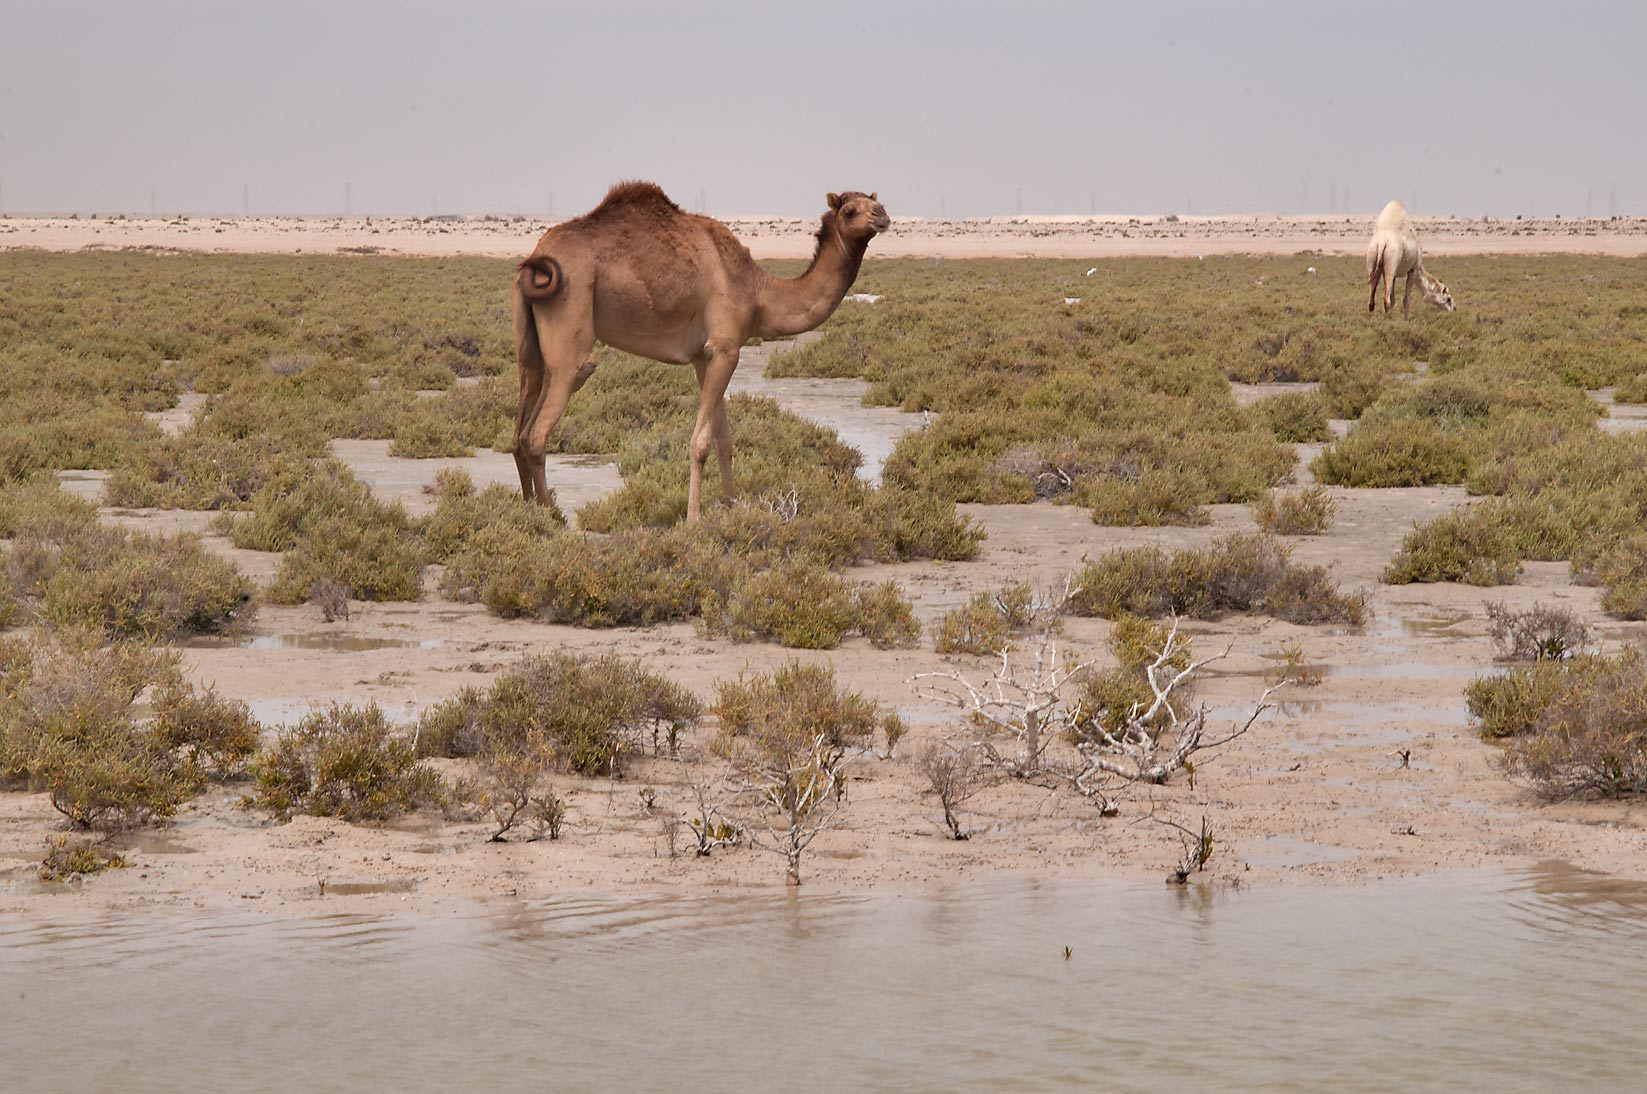 Grazing camels in a salt marsh near Mesaieed. Qatar